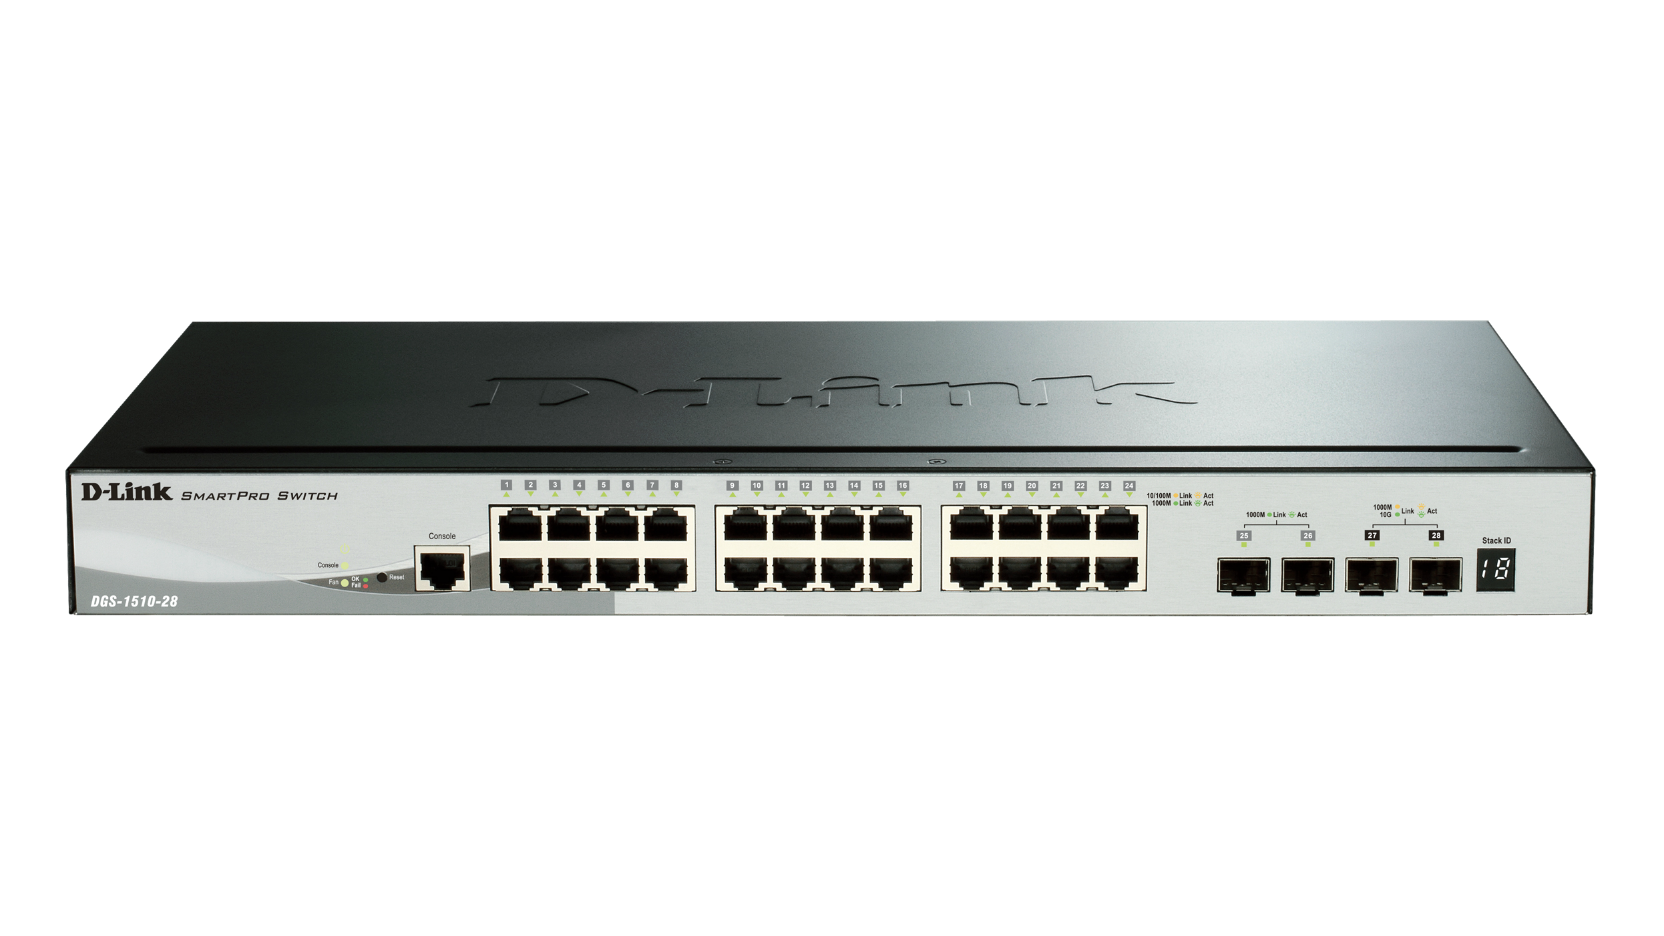 28-Port Gigabit Stackable Smart Managed Switch including 2 10G SFP+ and 2 SFP ports